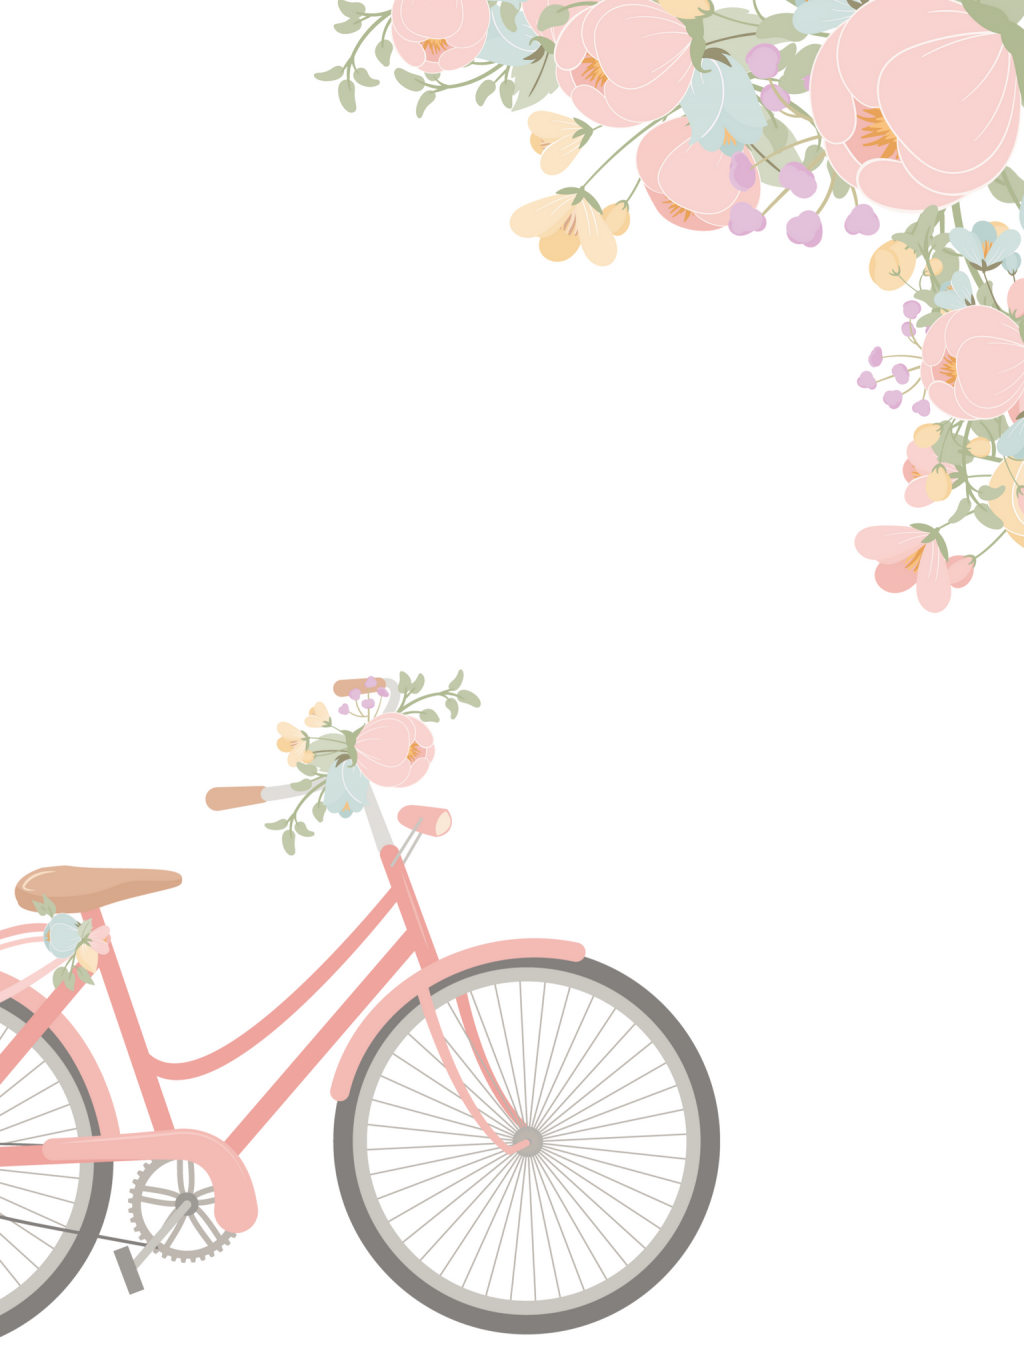 Ipad Watercolor Floral And Pink Bicycle Wallpaper By The Birch